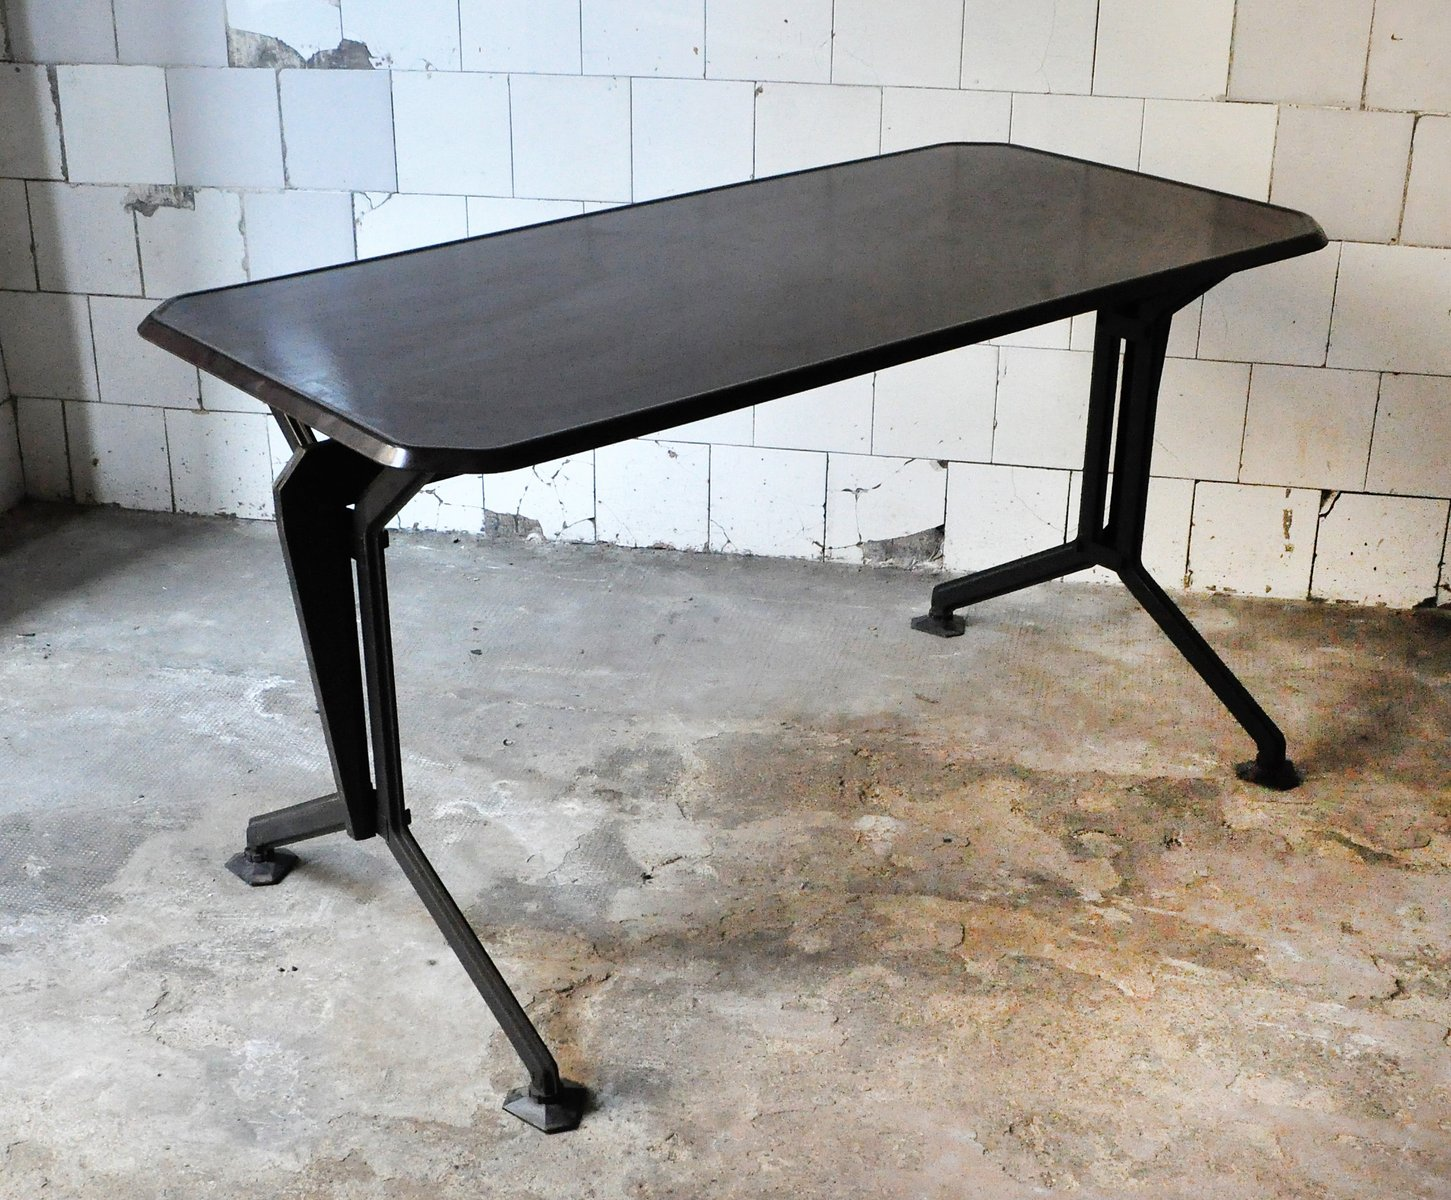 Mid Century Italian Arco Desk By BBPR For Olivetti Synthesis, 1960s